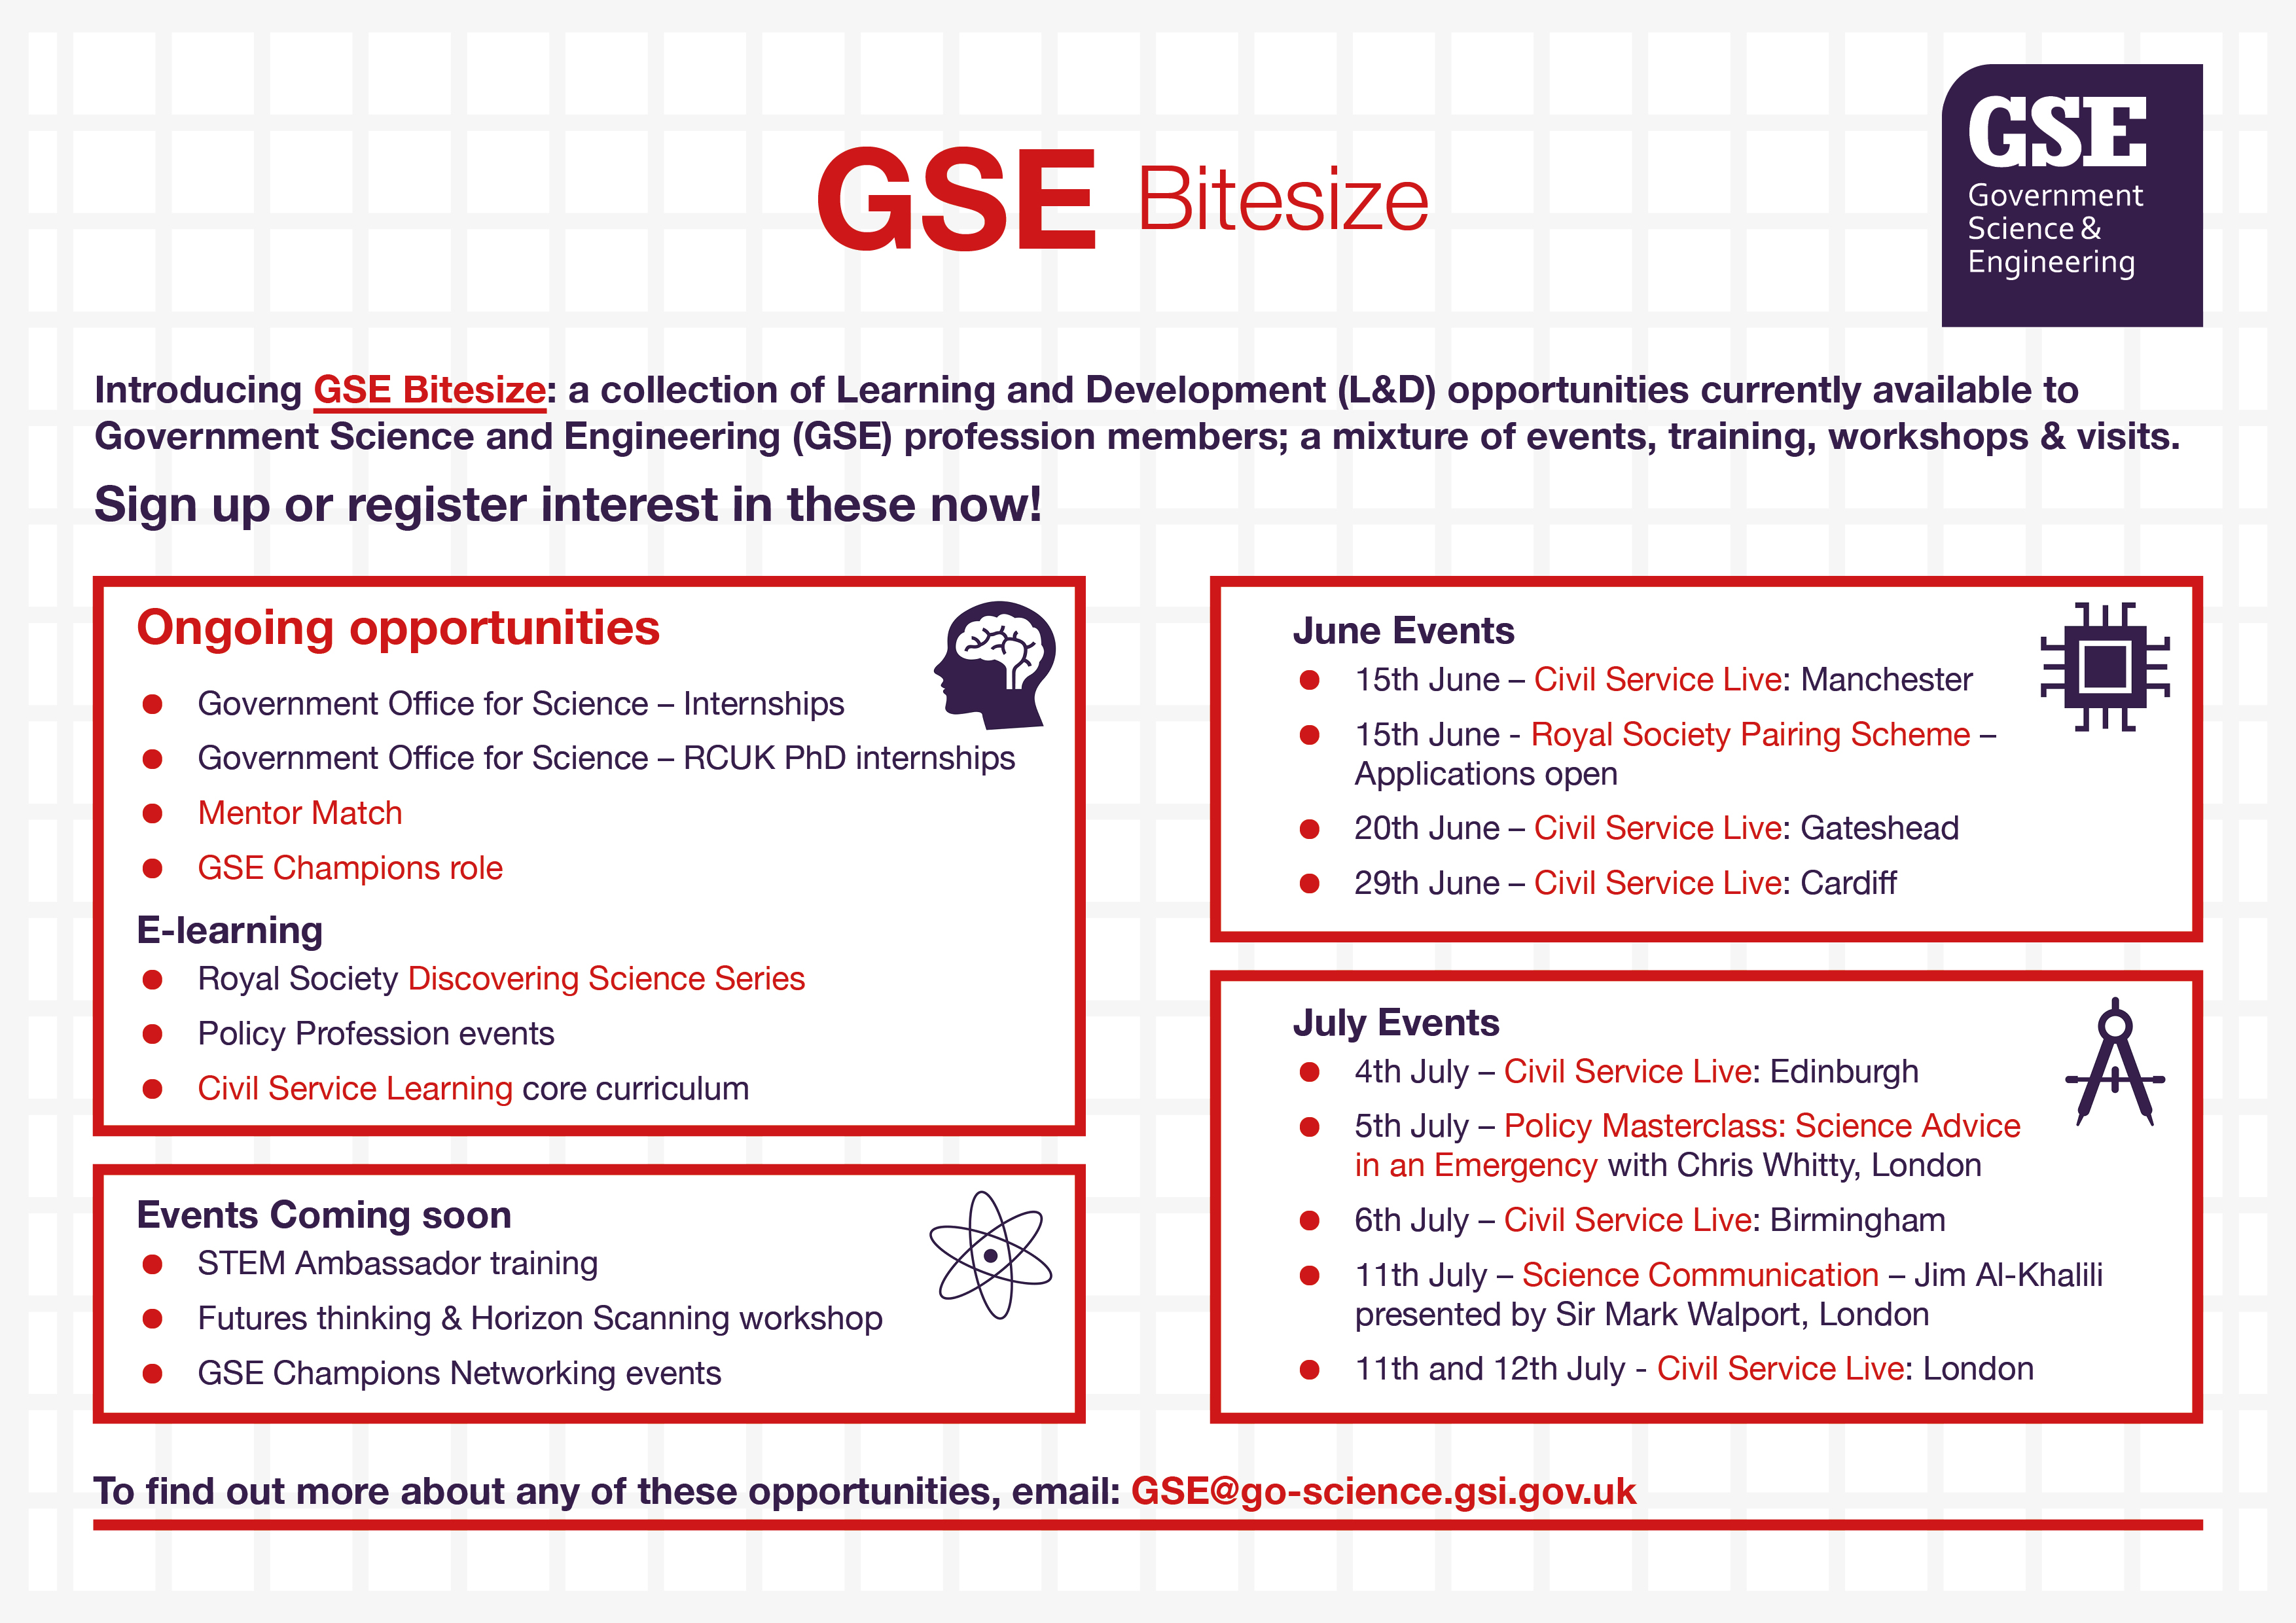 A collection of GSE opportunties